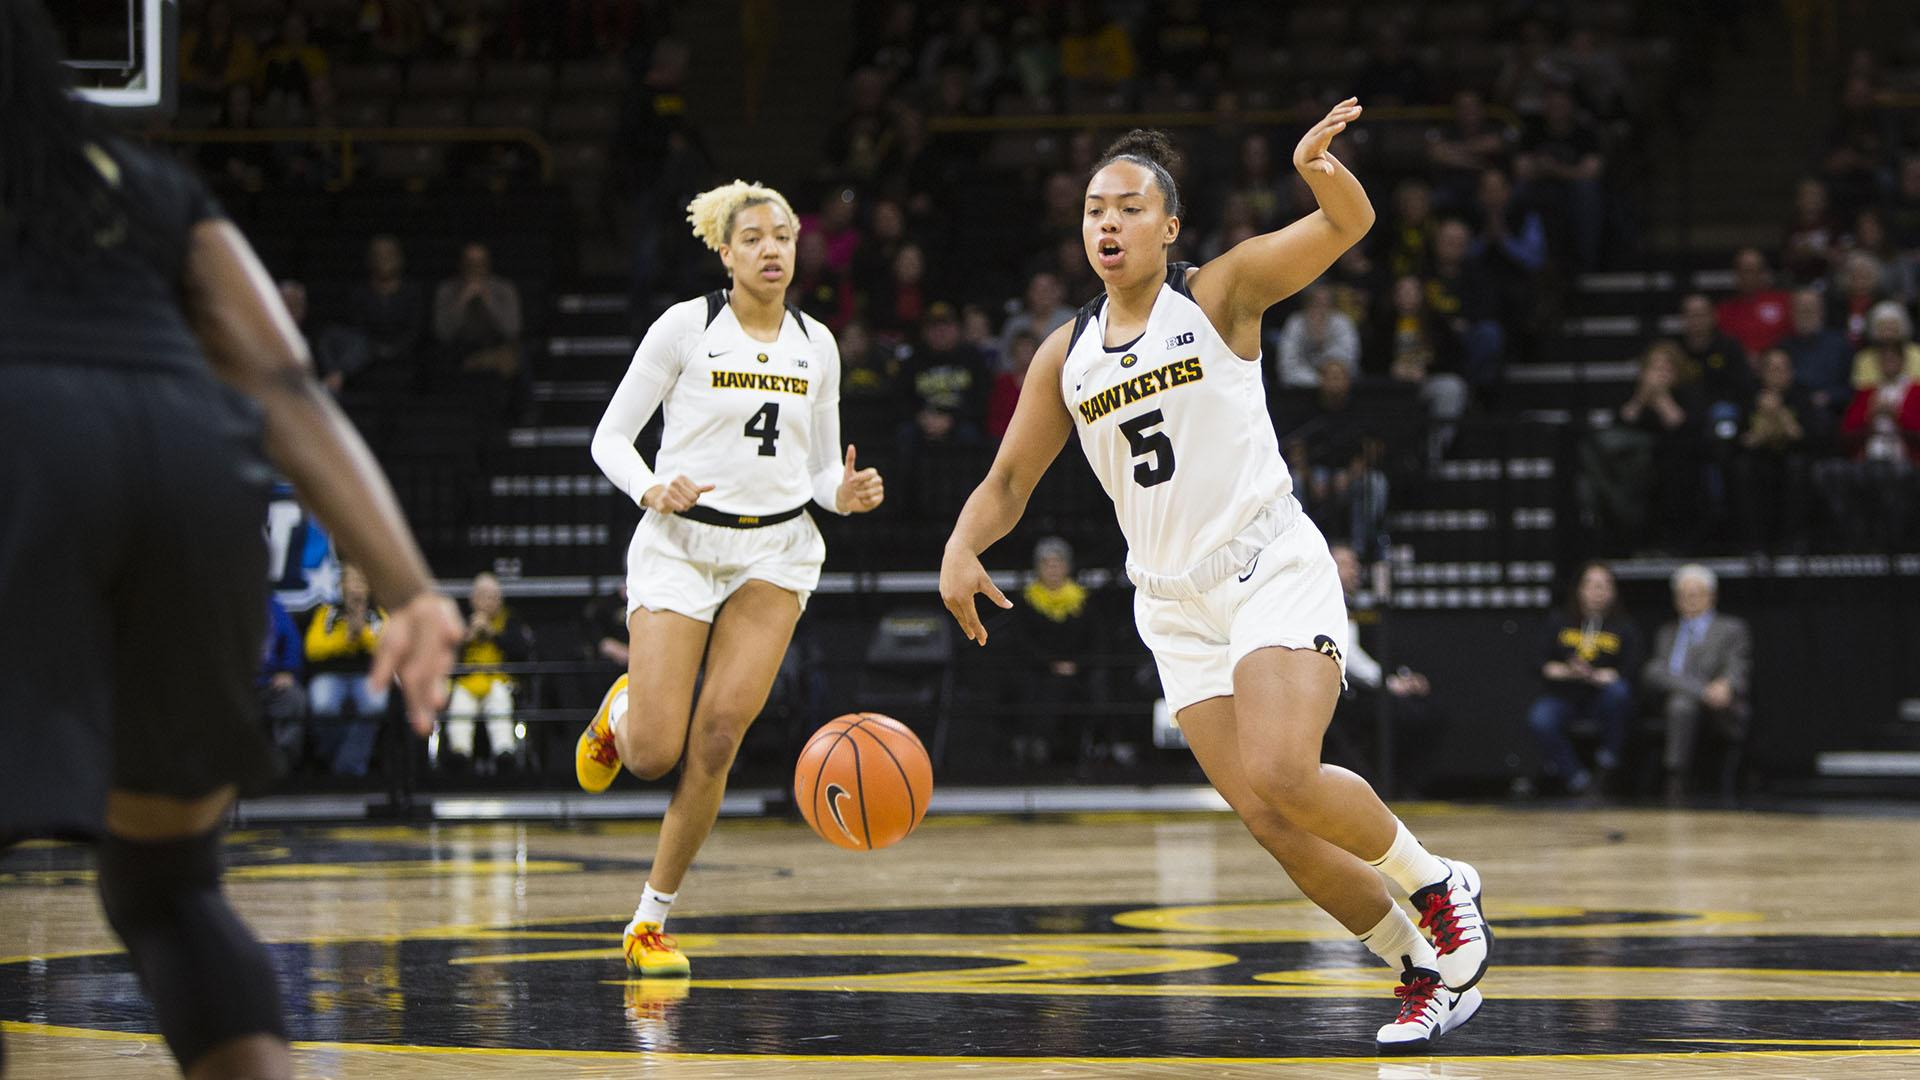 Iowa guard Alexis Sevillian gestures to teammate while taking the ball up the court during an Iowa/Purdue women's basketball game in Carver-Hawkeye Arena on Saturday, Jan. 13, 2018. The Boilermakers defeated the Hawkeyes, 76-70. (Joseph Cress/The Daily Iowan)